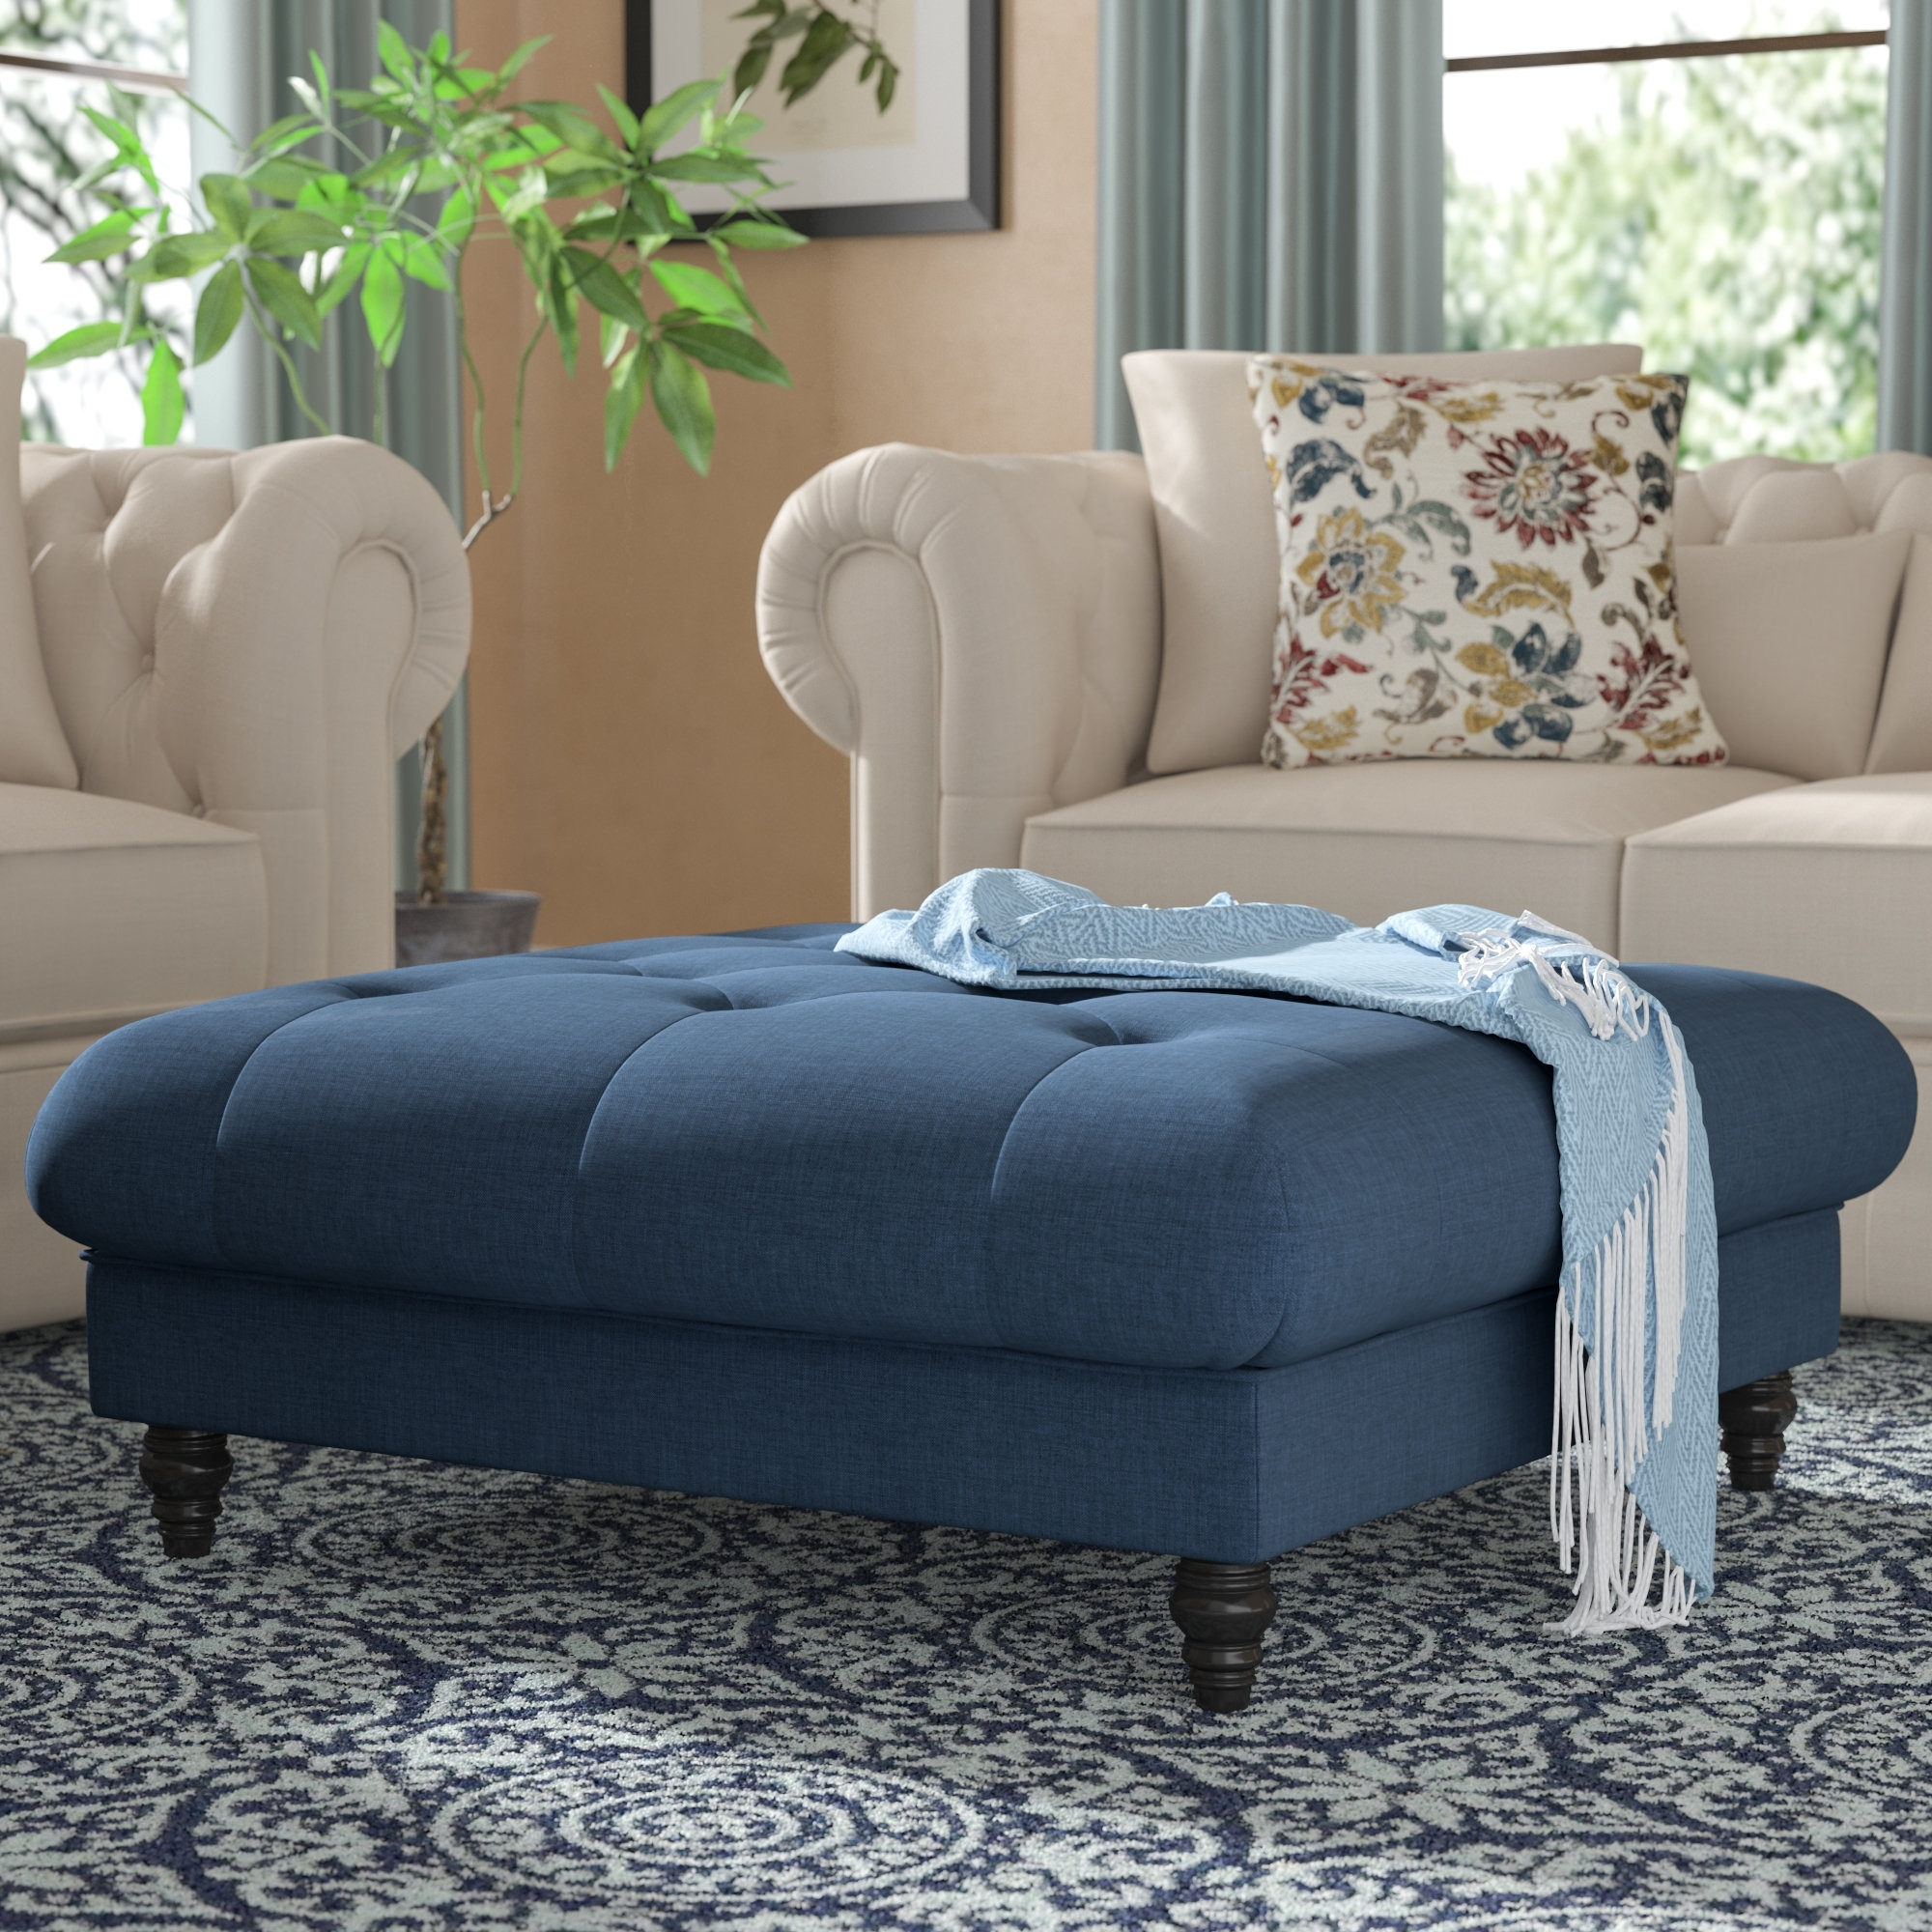 Upholstered Square Ottoman | Wayfair pertaining to Mill Large Leather Coffee Tables (Image 30 of 30)